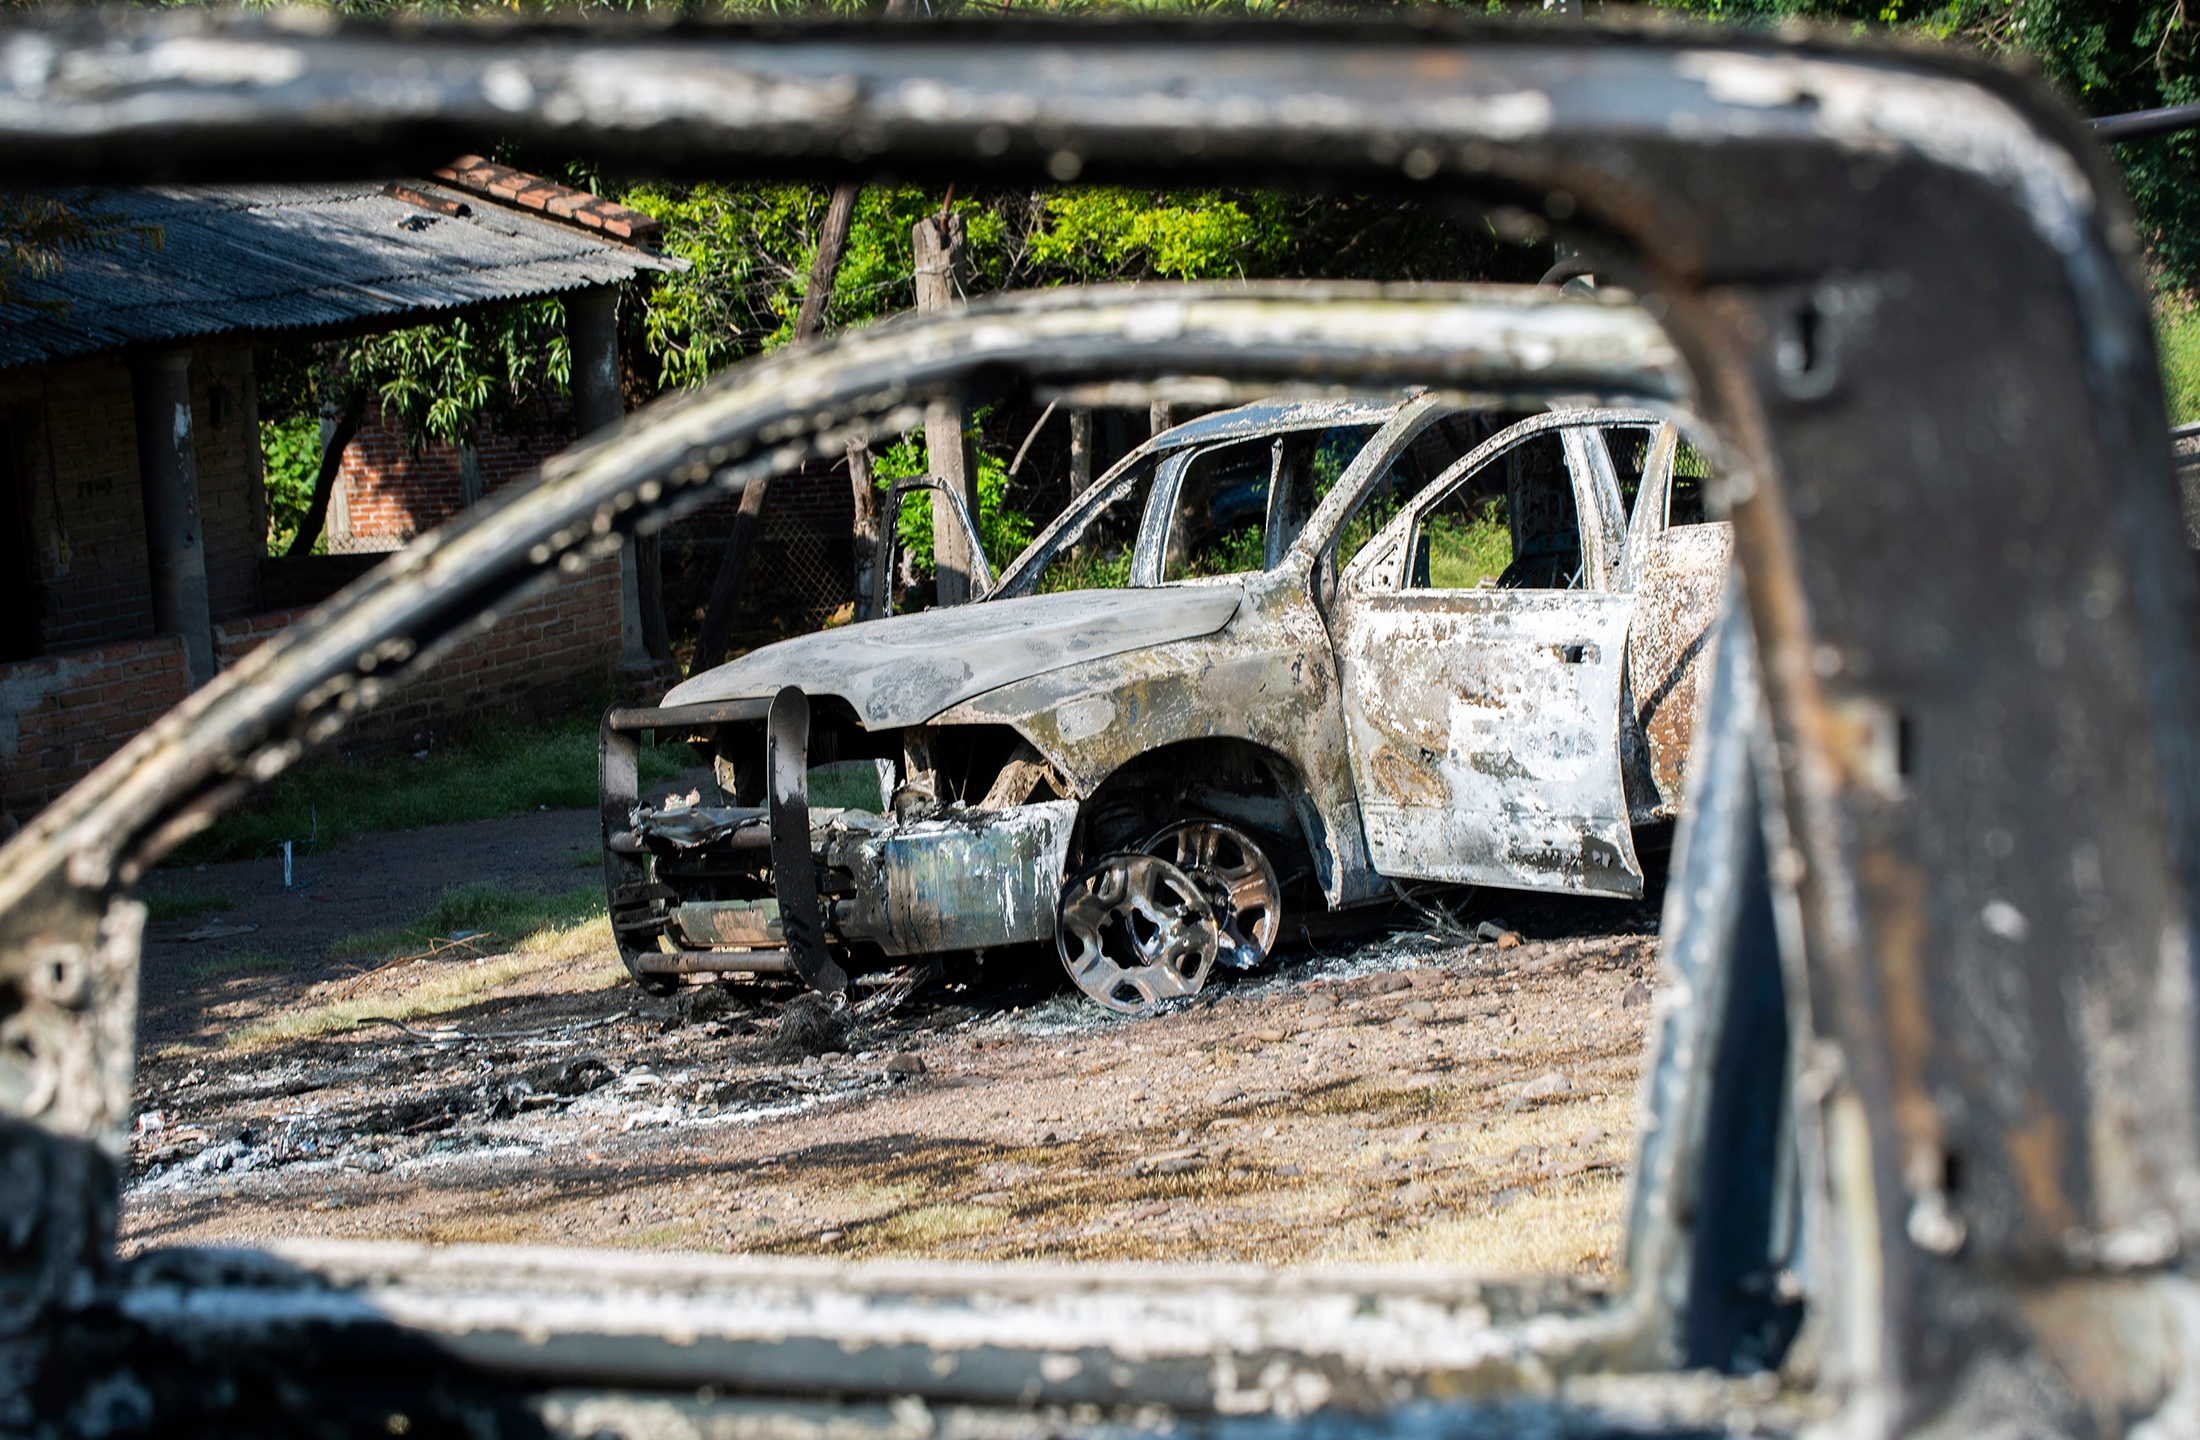 Police vehicles are seen after being torched by gunmen who also killed 14 officers in an ambush in the community of Aguililla, in the Mexican state of Michoacan, on Oct. 14, 2019. (Credit: Enrique Castro / AFP / Getty Images)